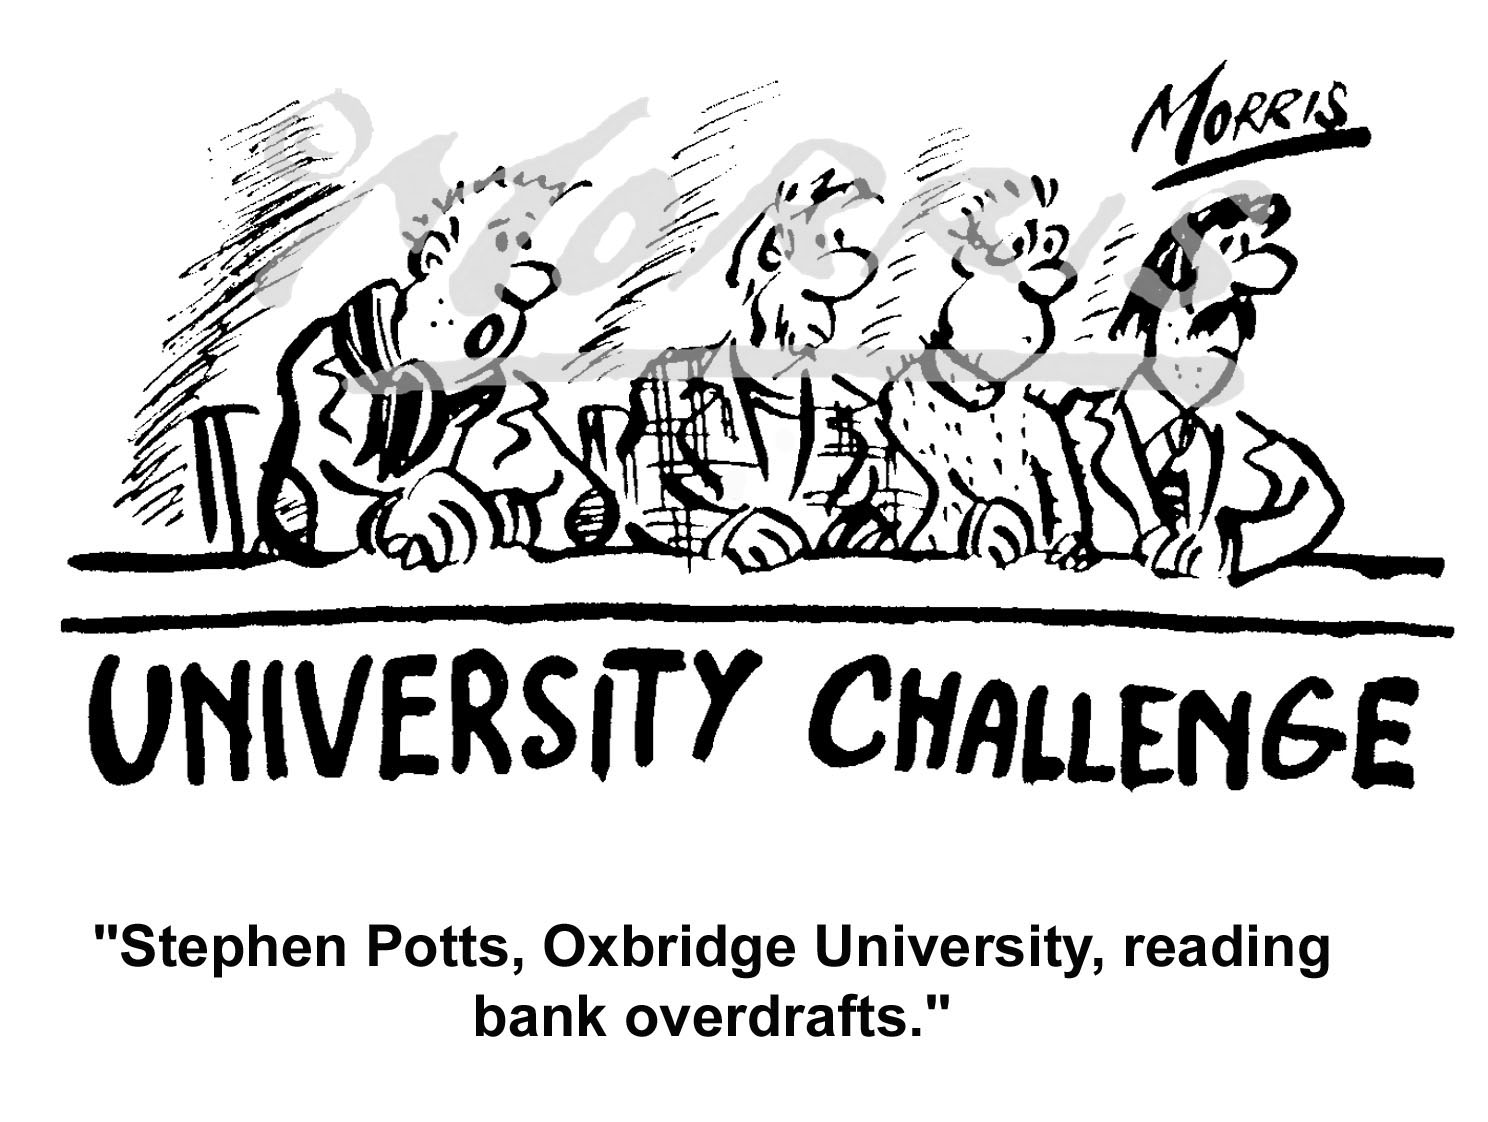 Bank overdraft cartoon Ref: 4549bw